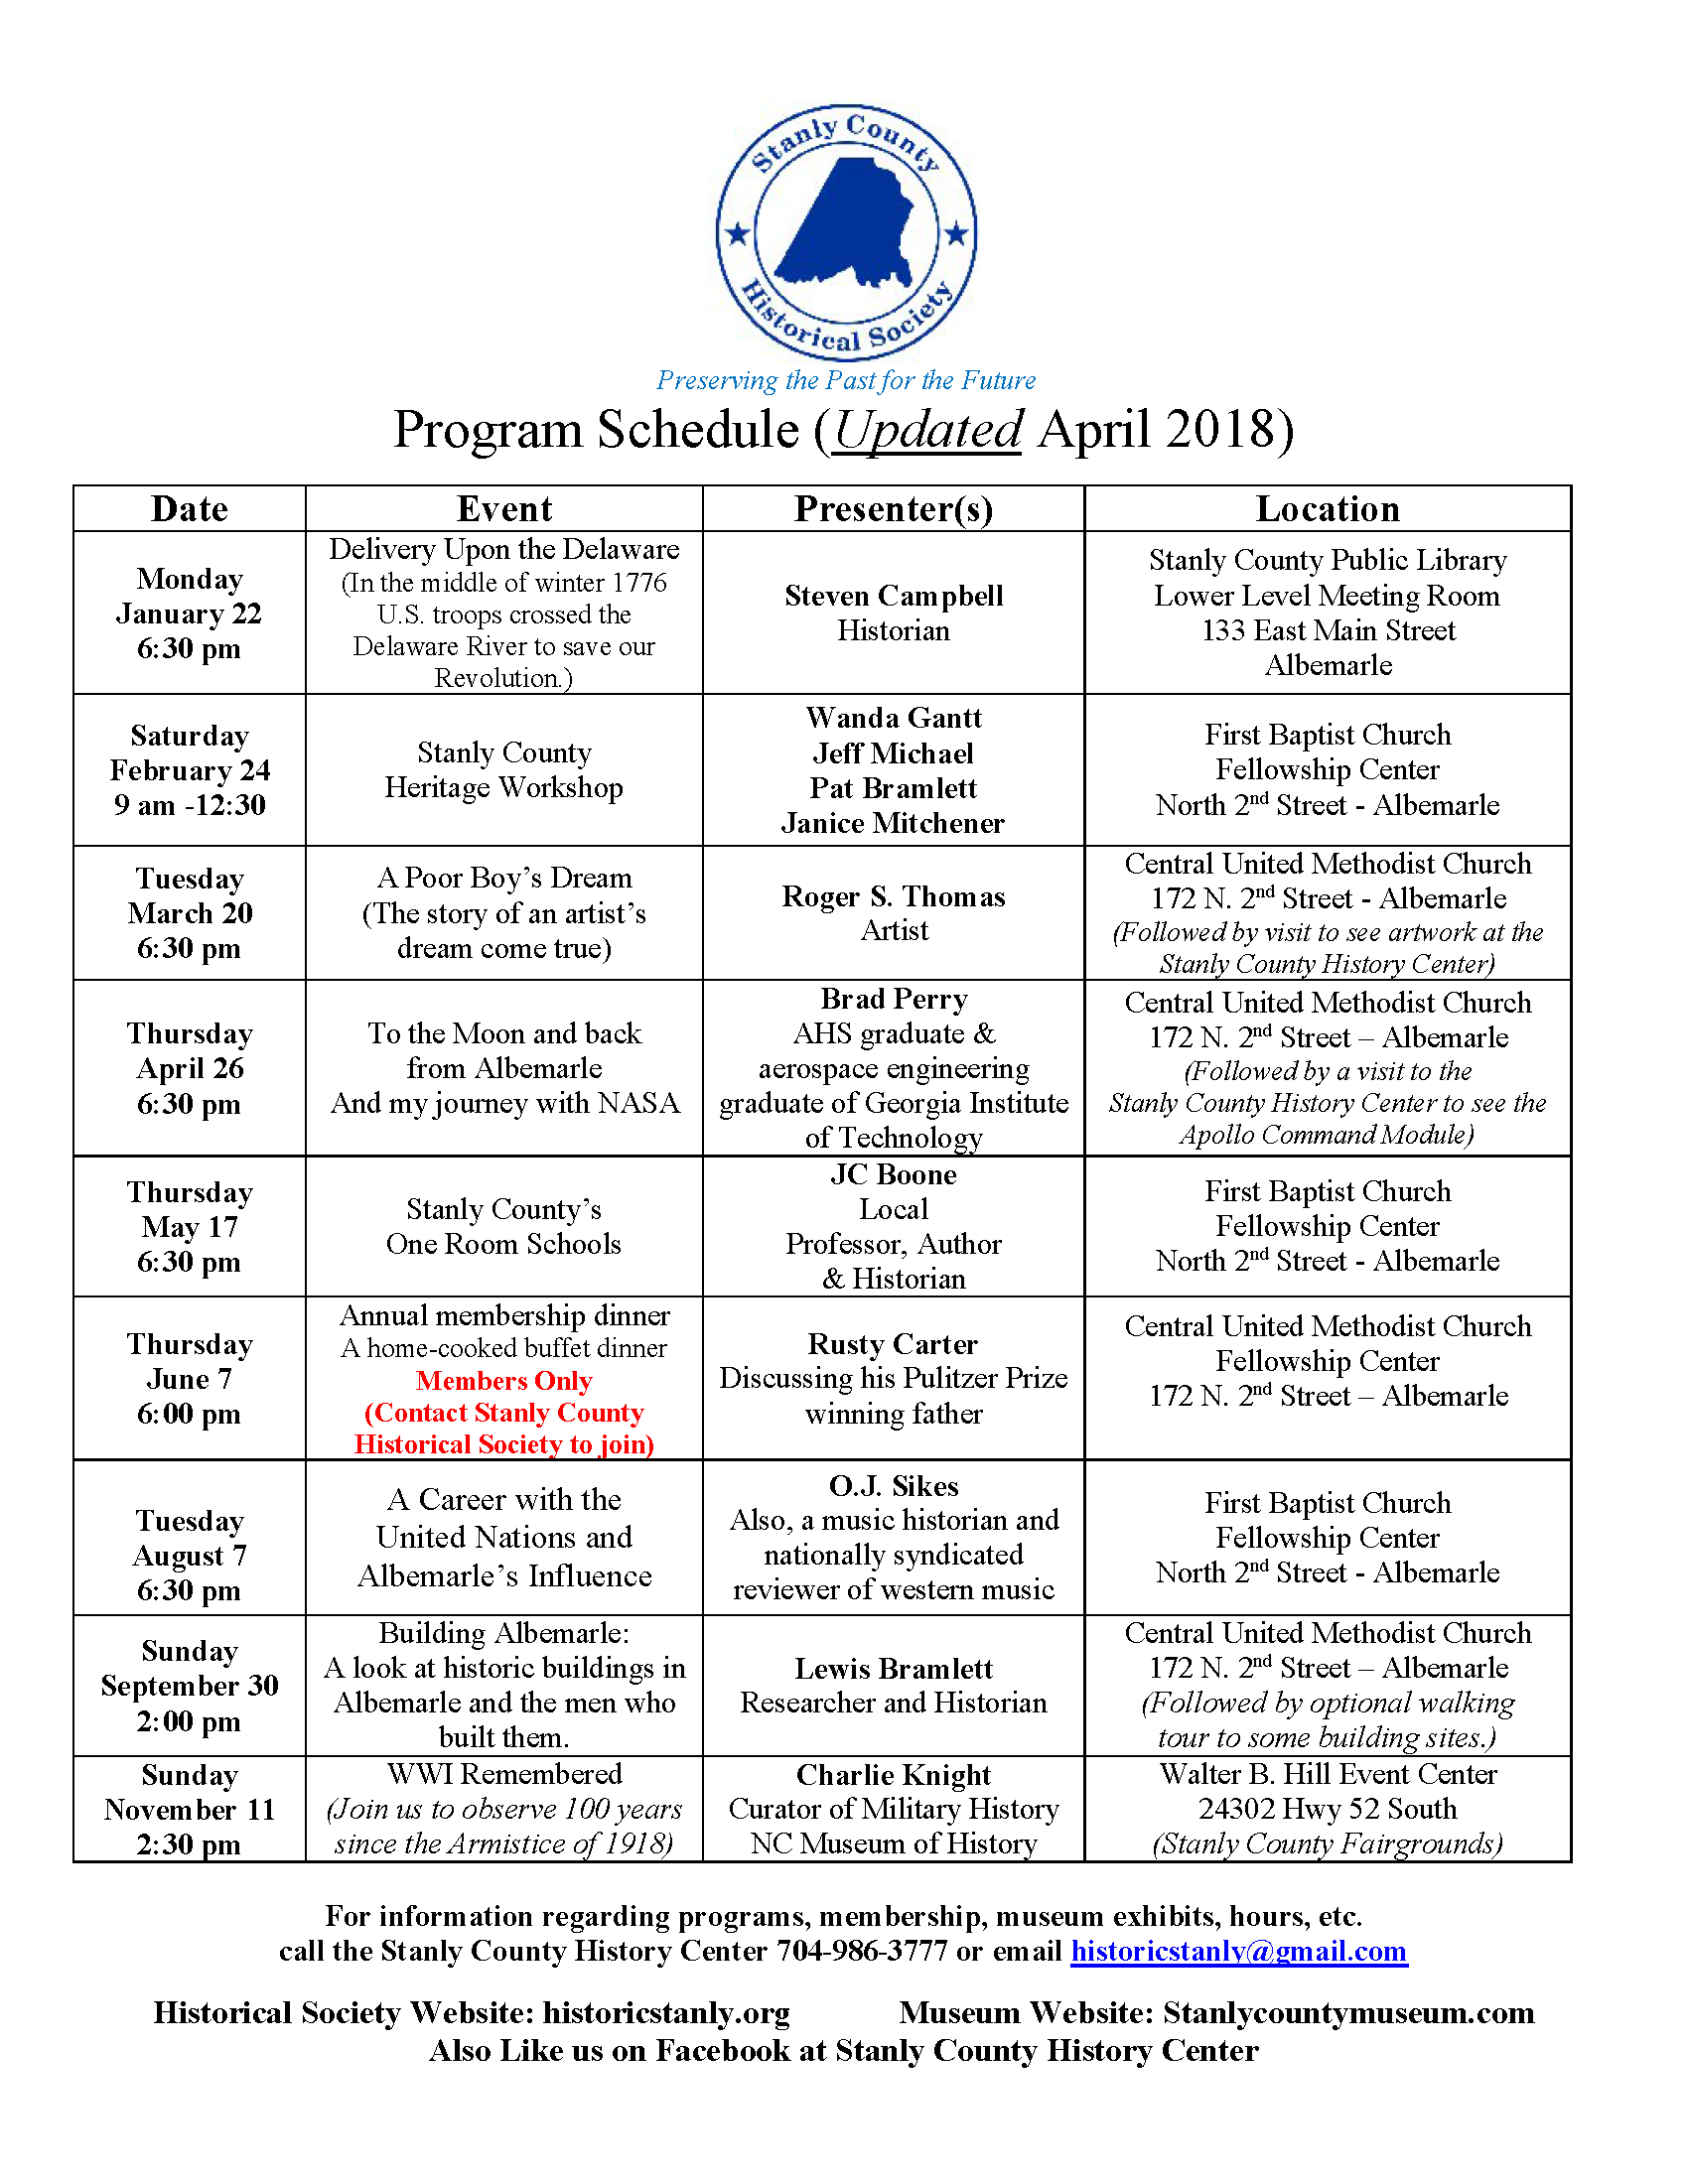 2018 Schedule for the Stanly County Historical Society's programs. Please call 704-986-3777 for more information.